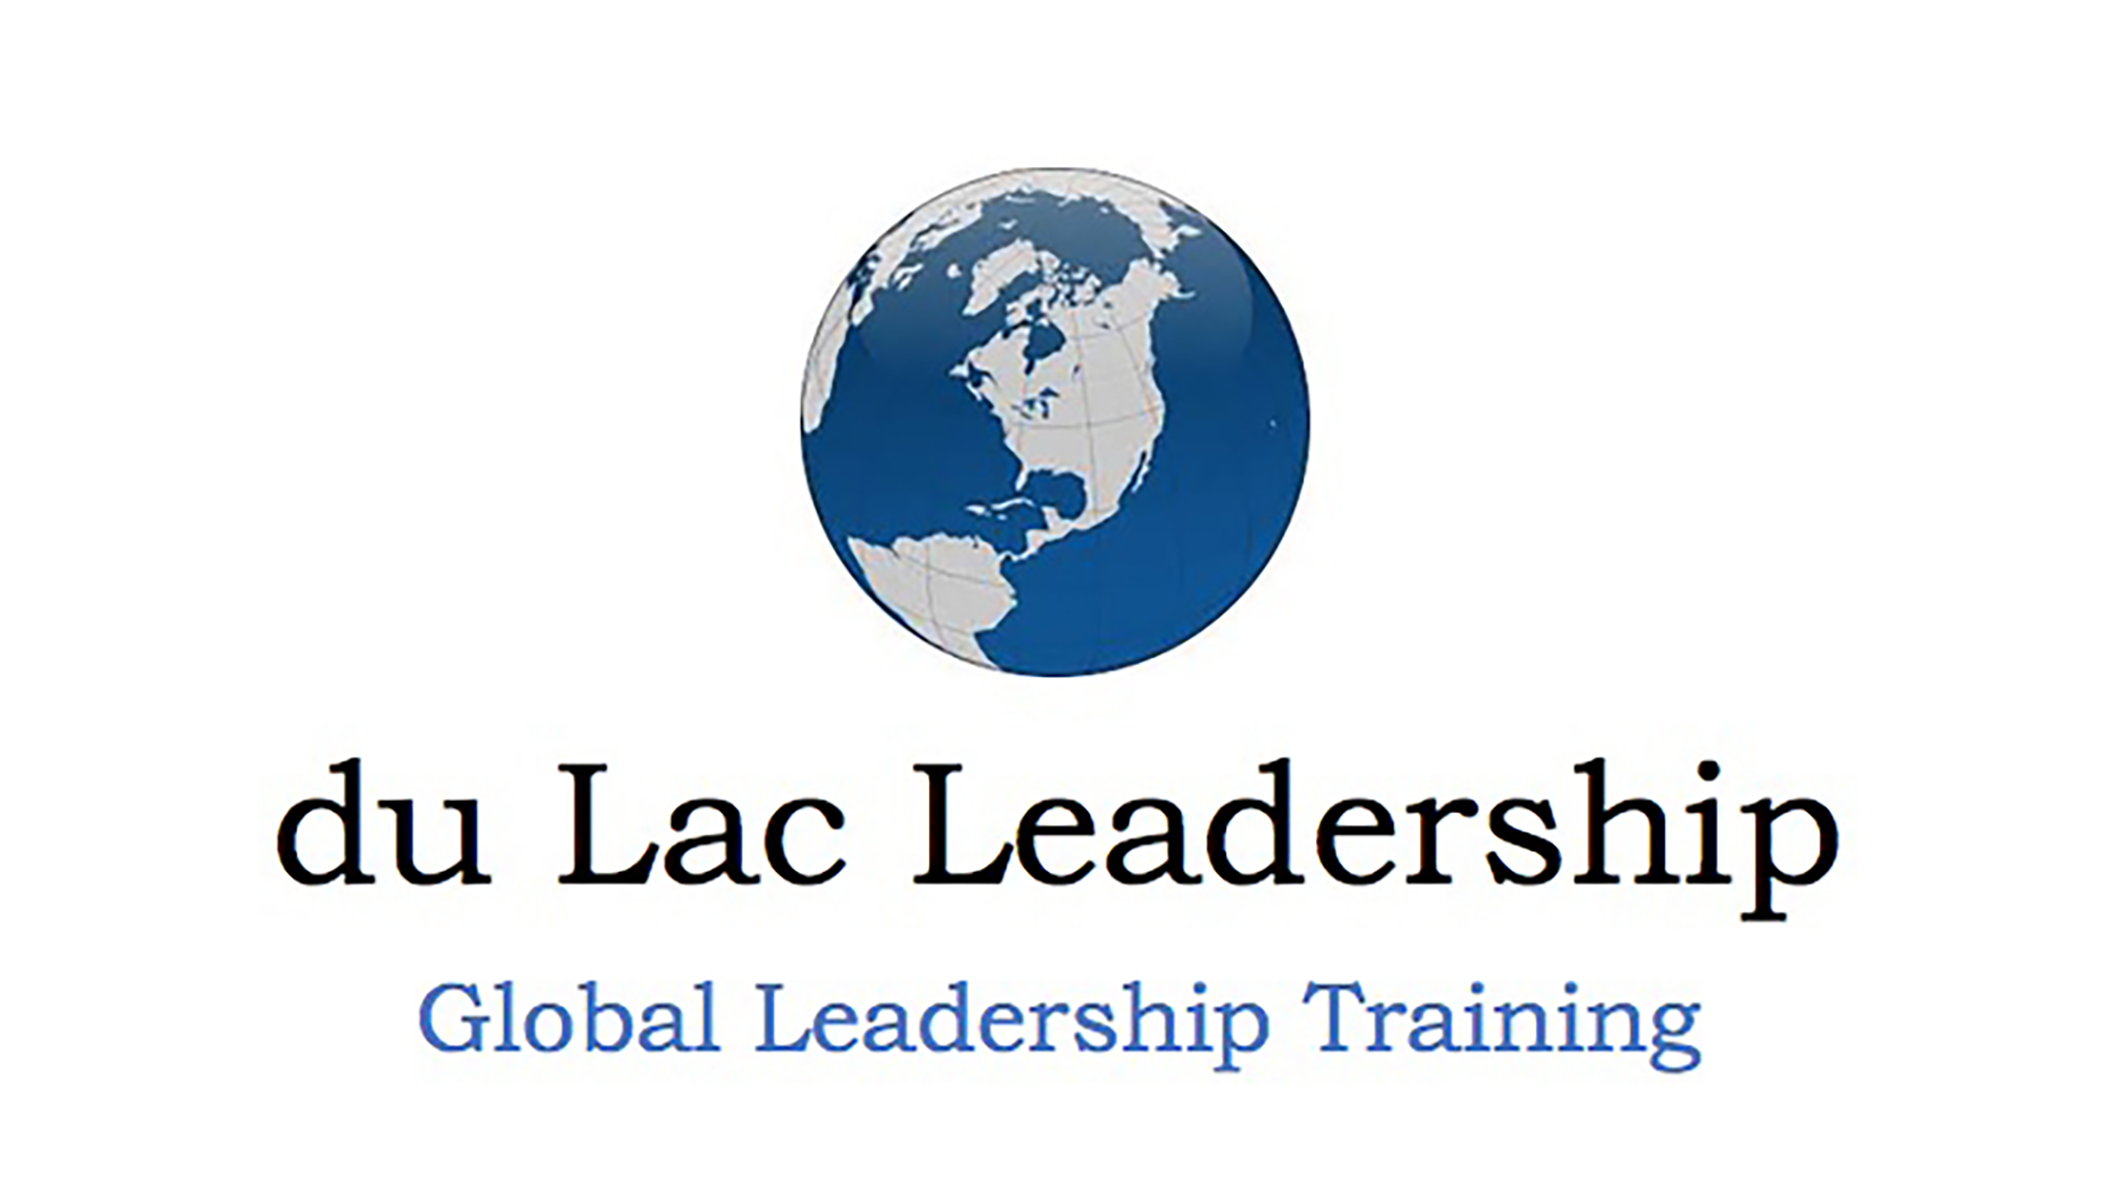 du Lac Leadership